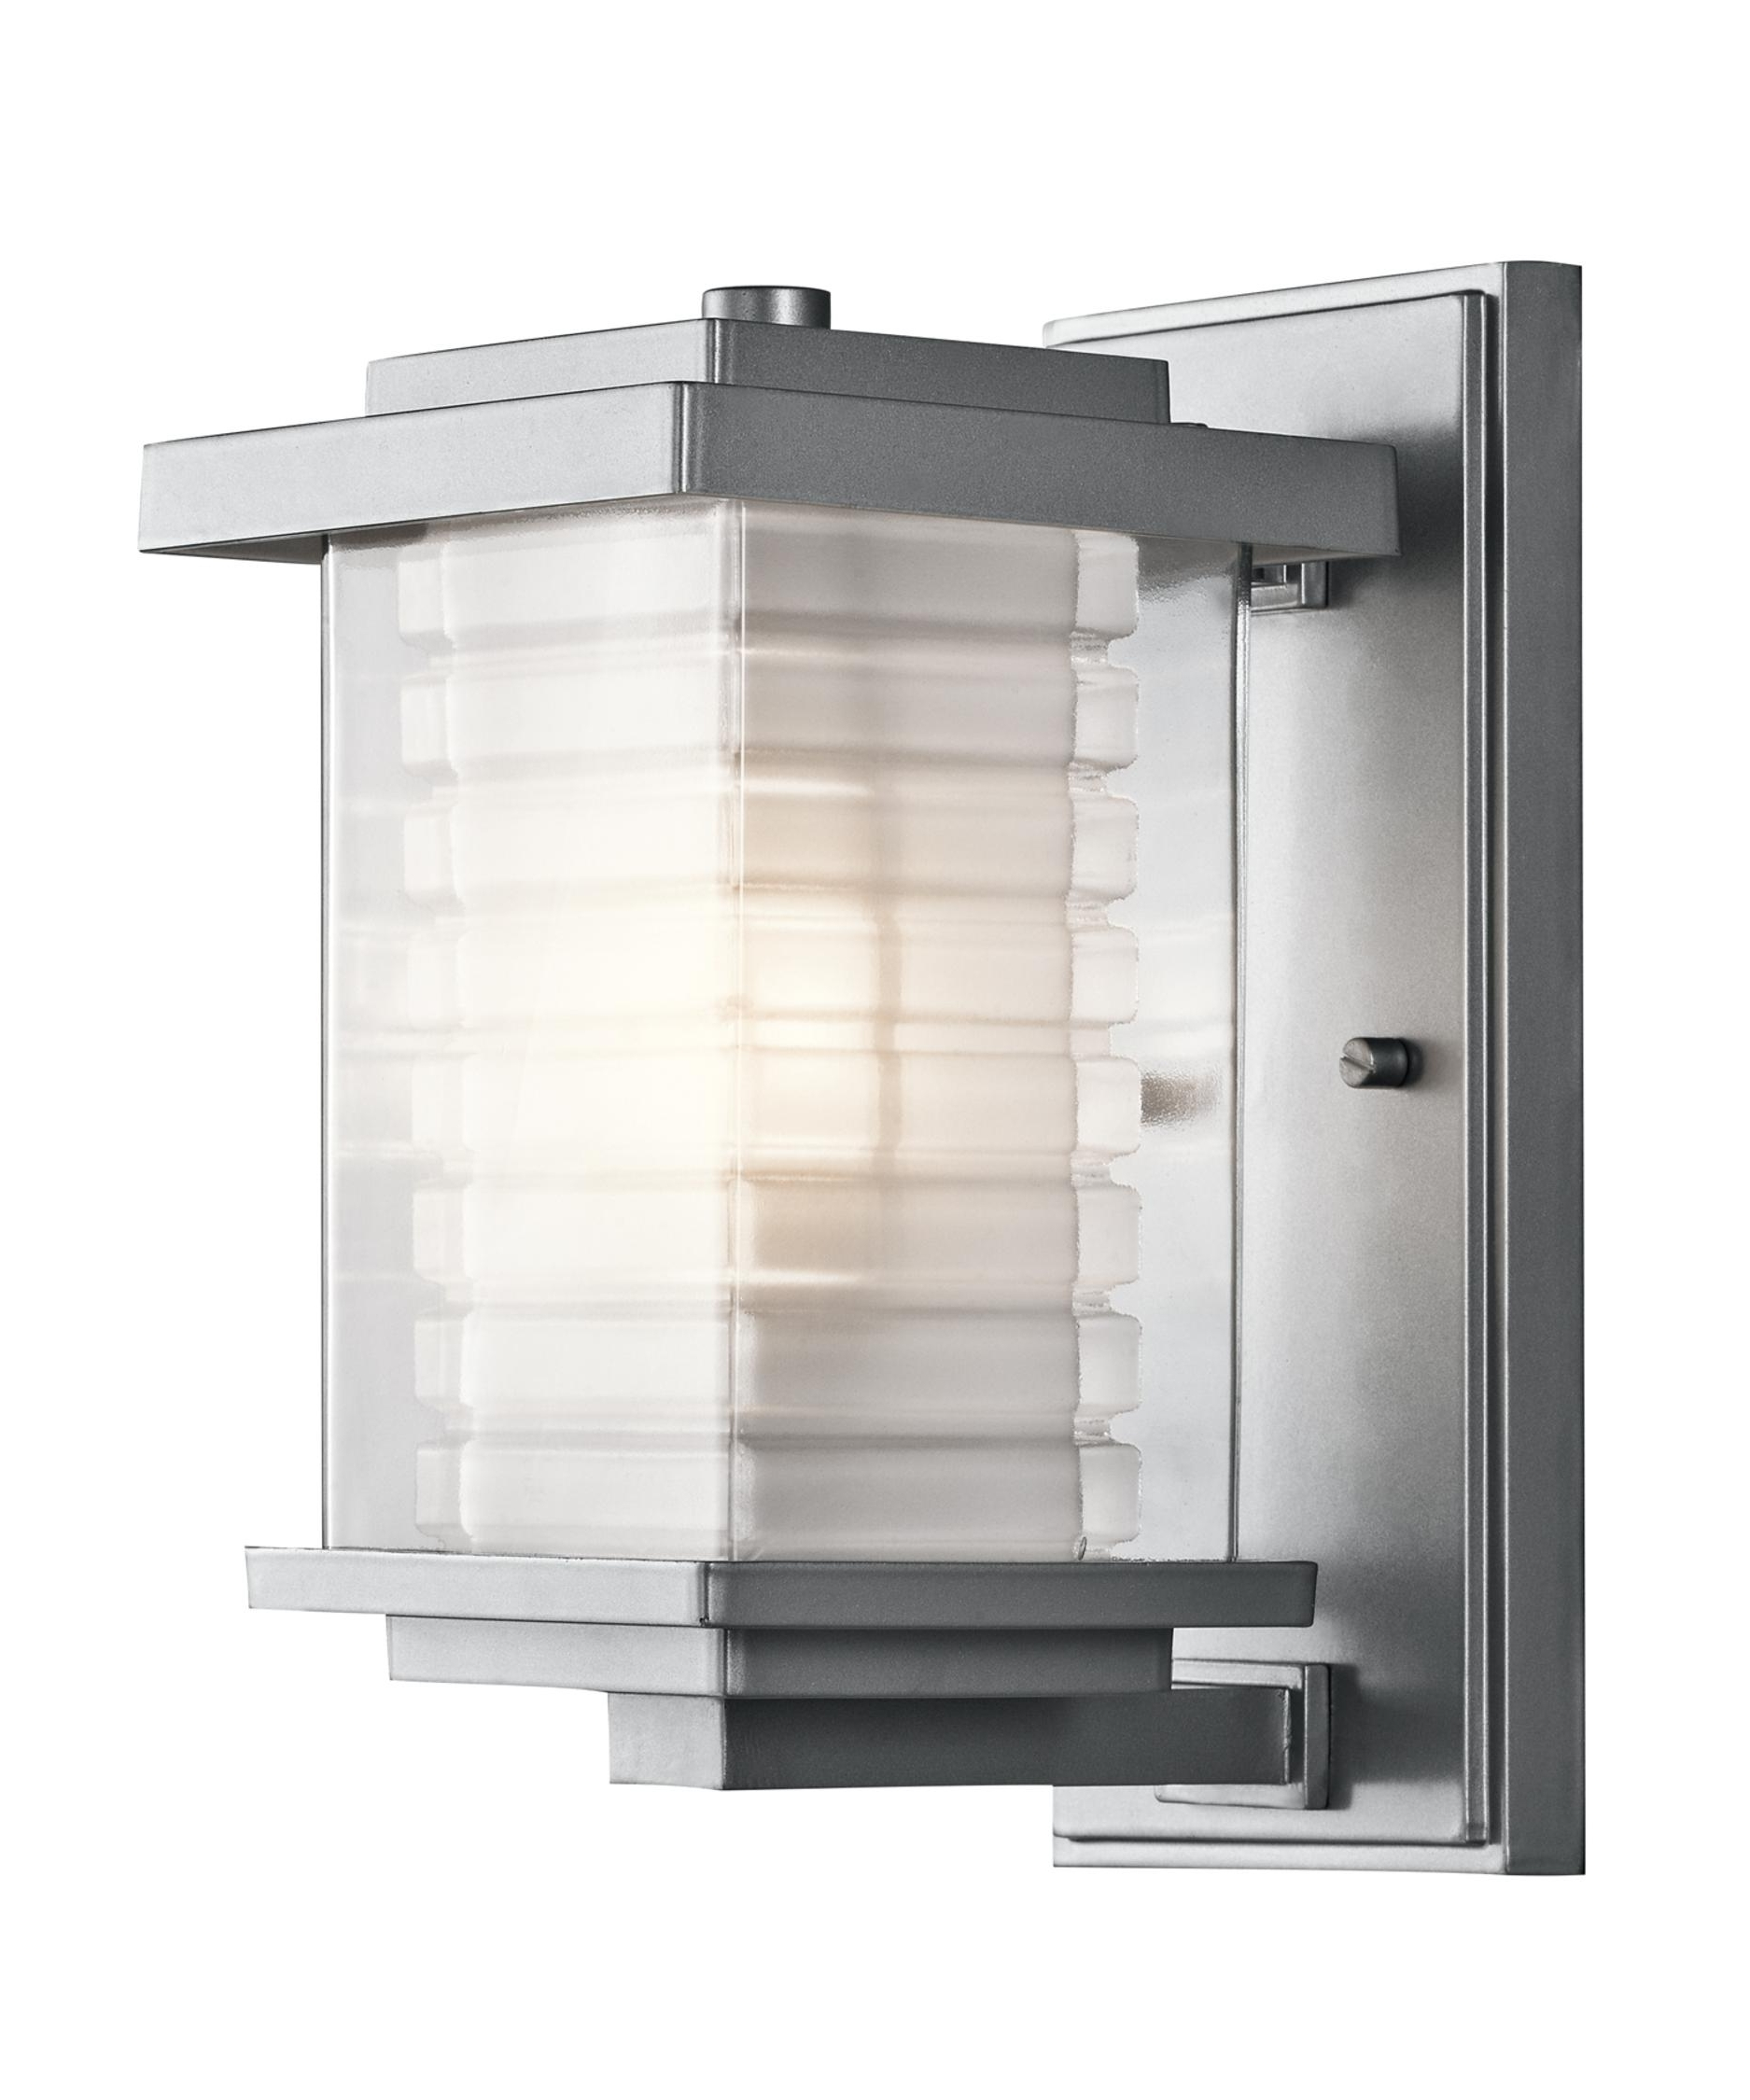 Kichler 49364 Ascari 6 Inch Wide 1 Light Outdoor Wall Light With Newest Kichler Lighting Outdoor Wall Lanterns (View 5 of 20)